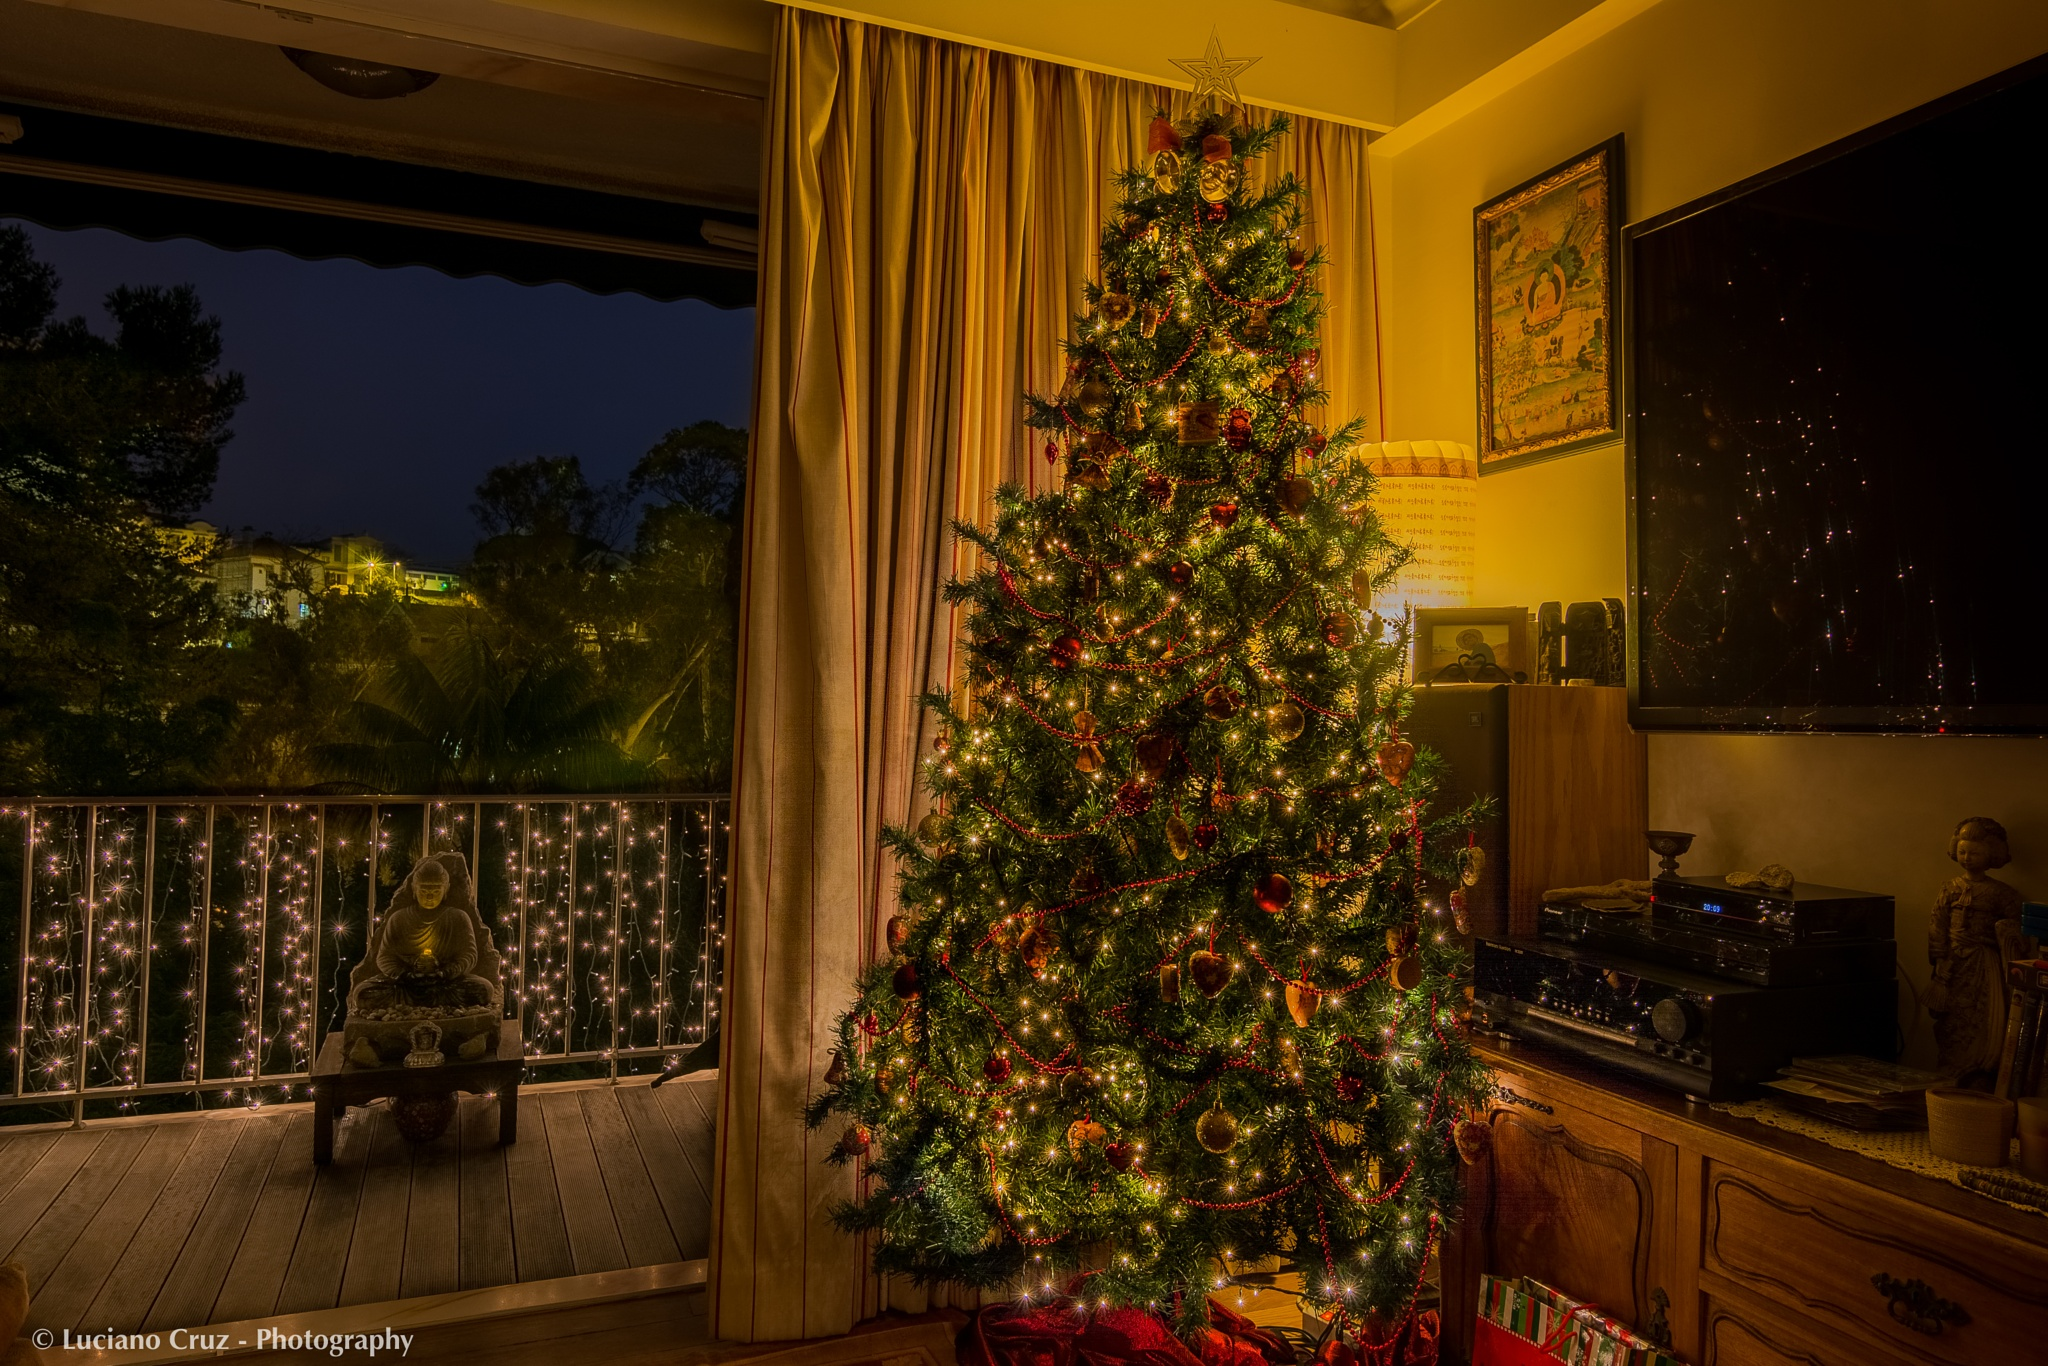 Merry Christmas to All of You by Luciano Cruz